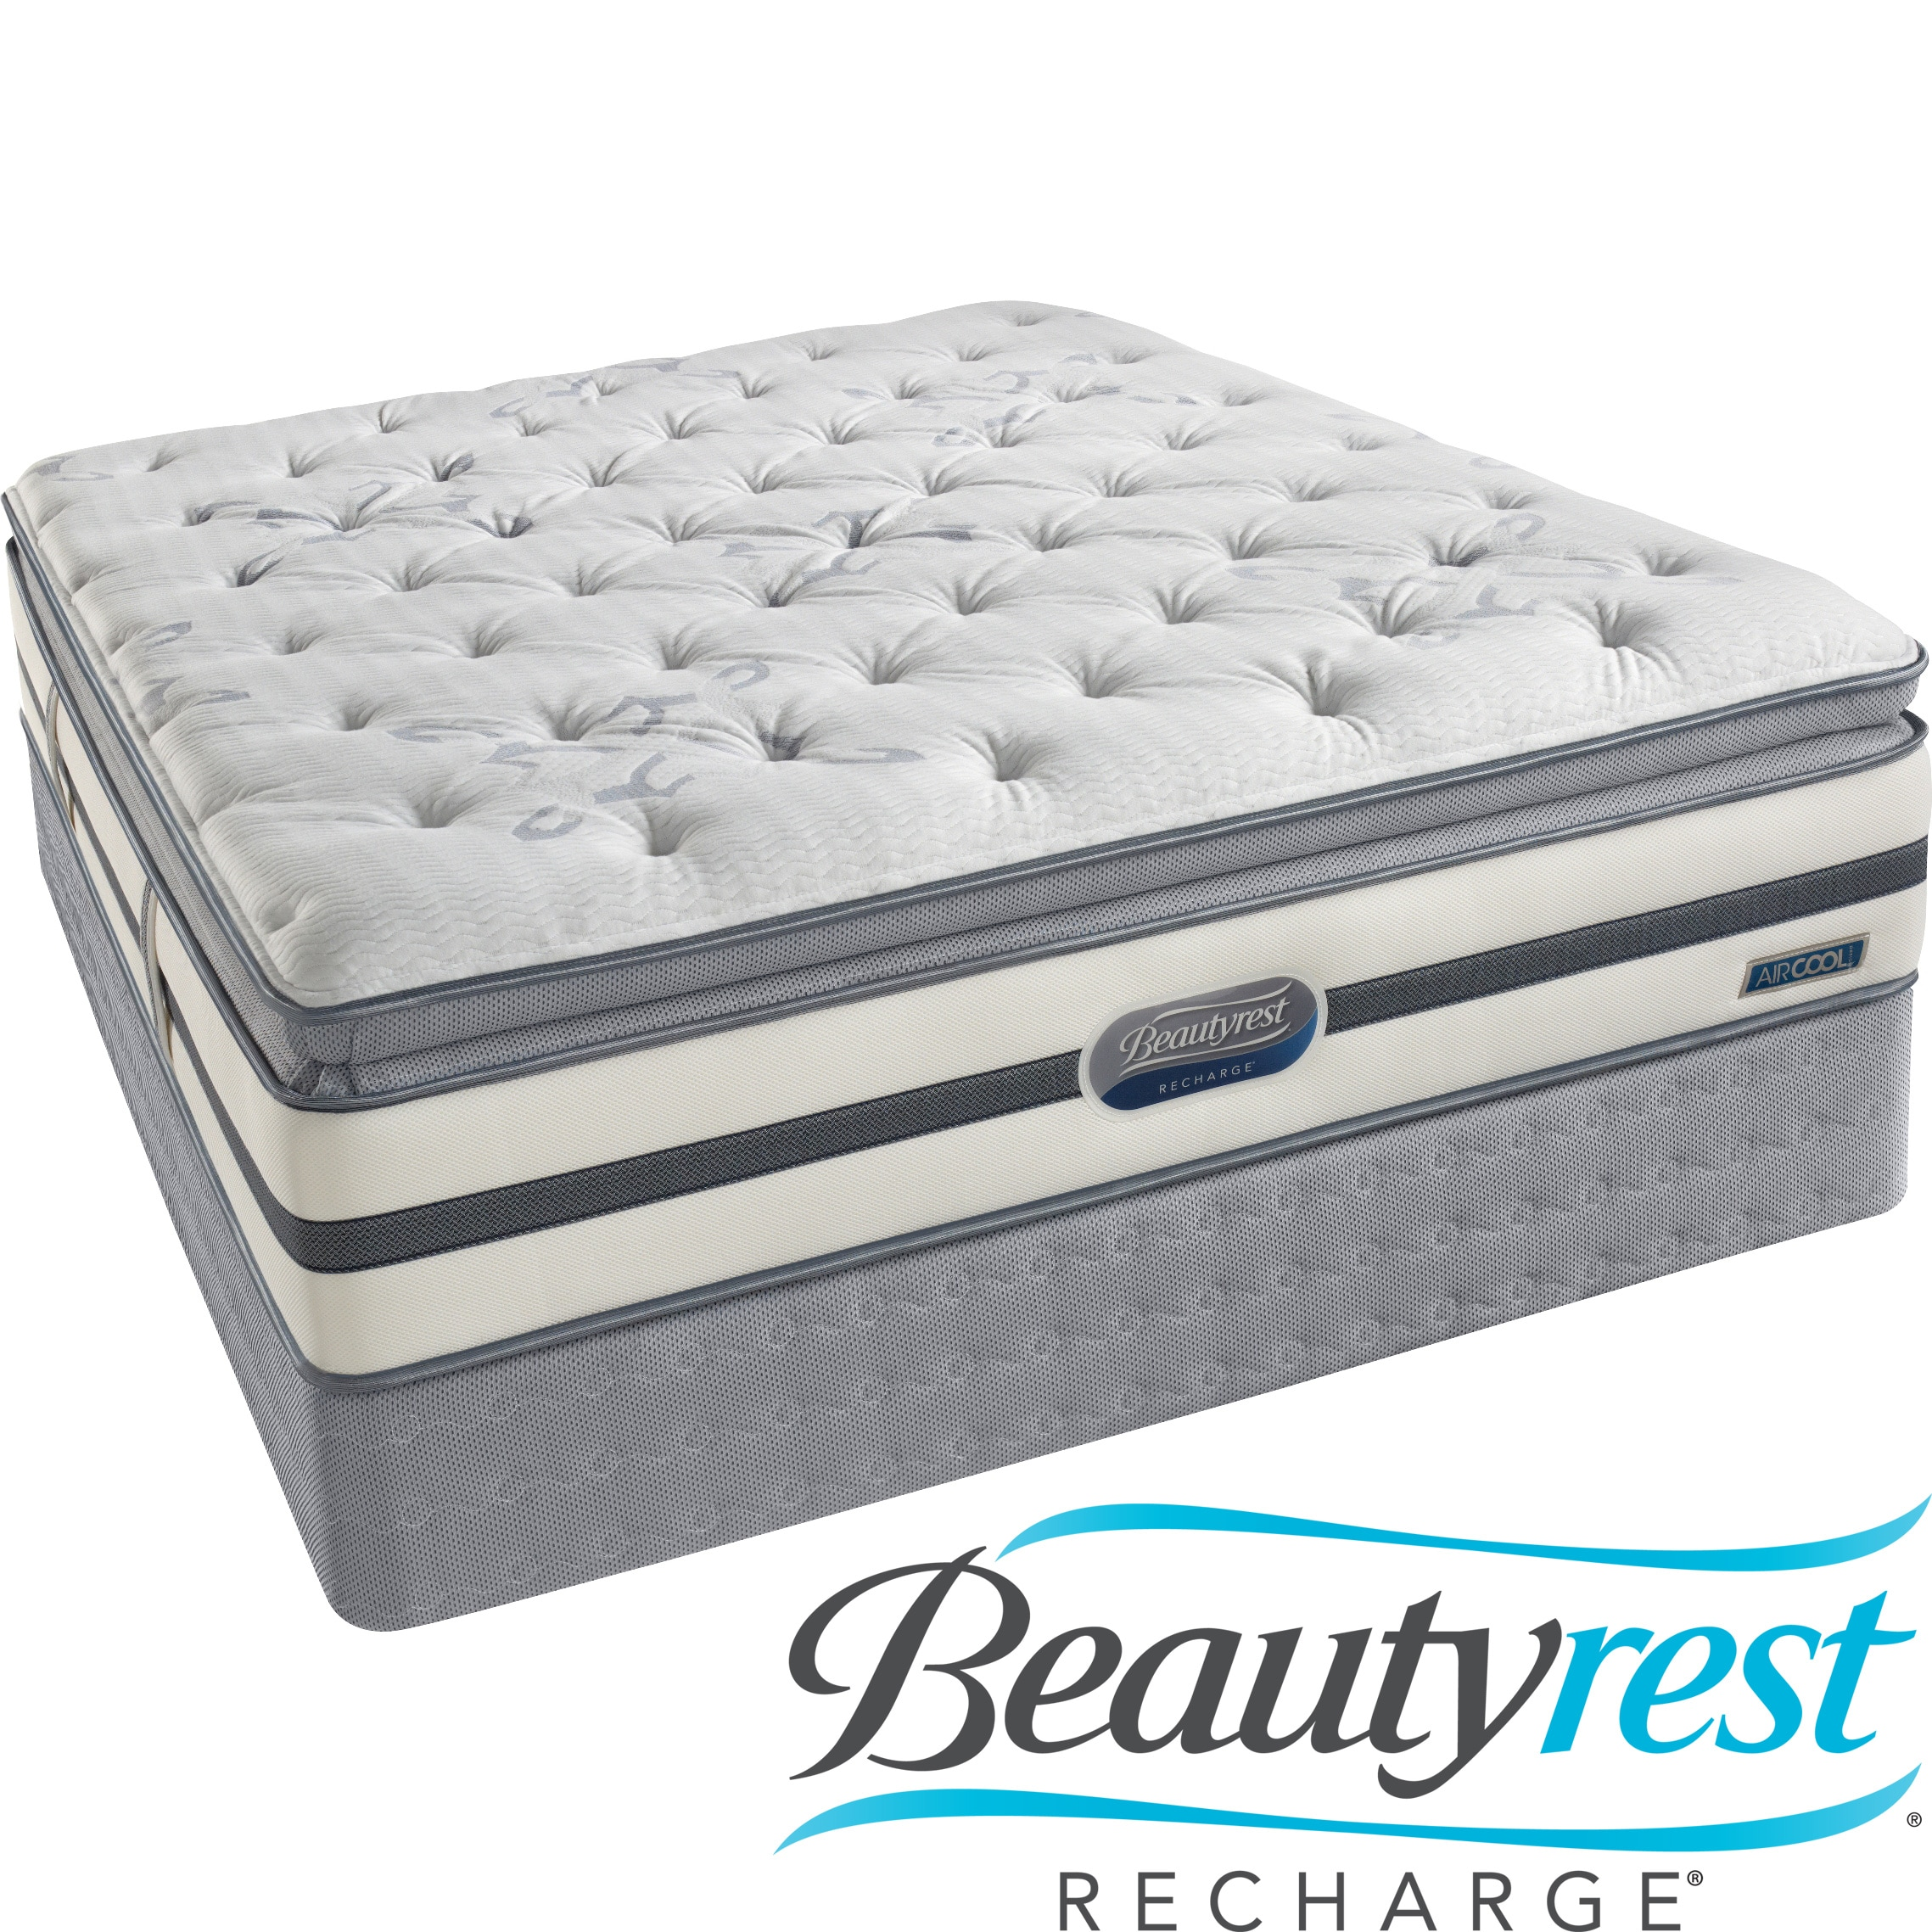 Beautyrest recharge spalding luxury firm queen mattress set bed mattress sale Queen mattress sale